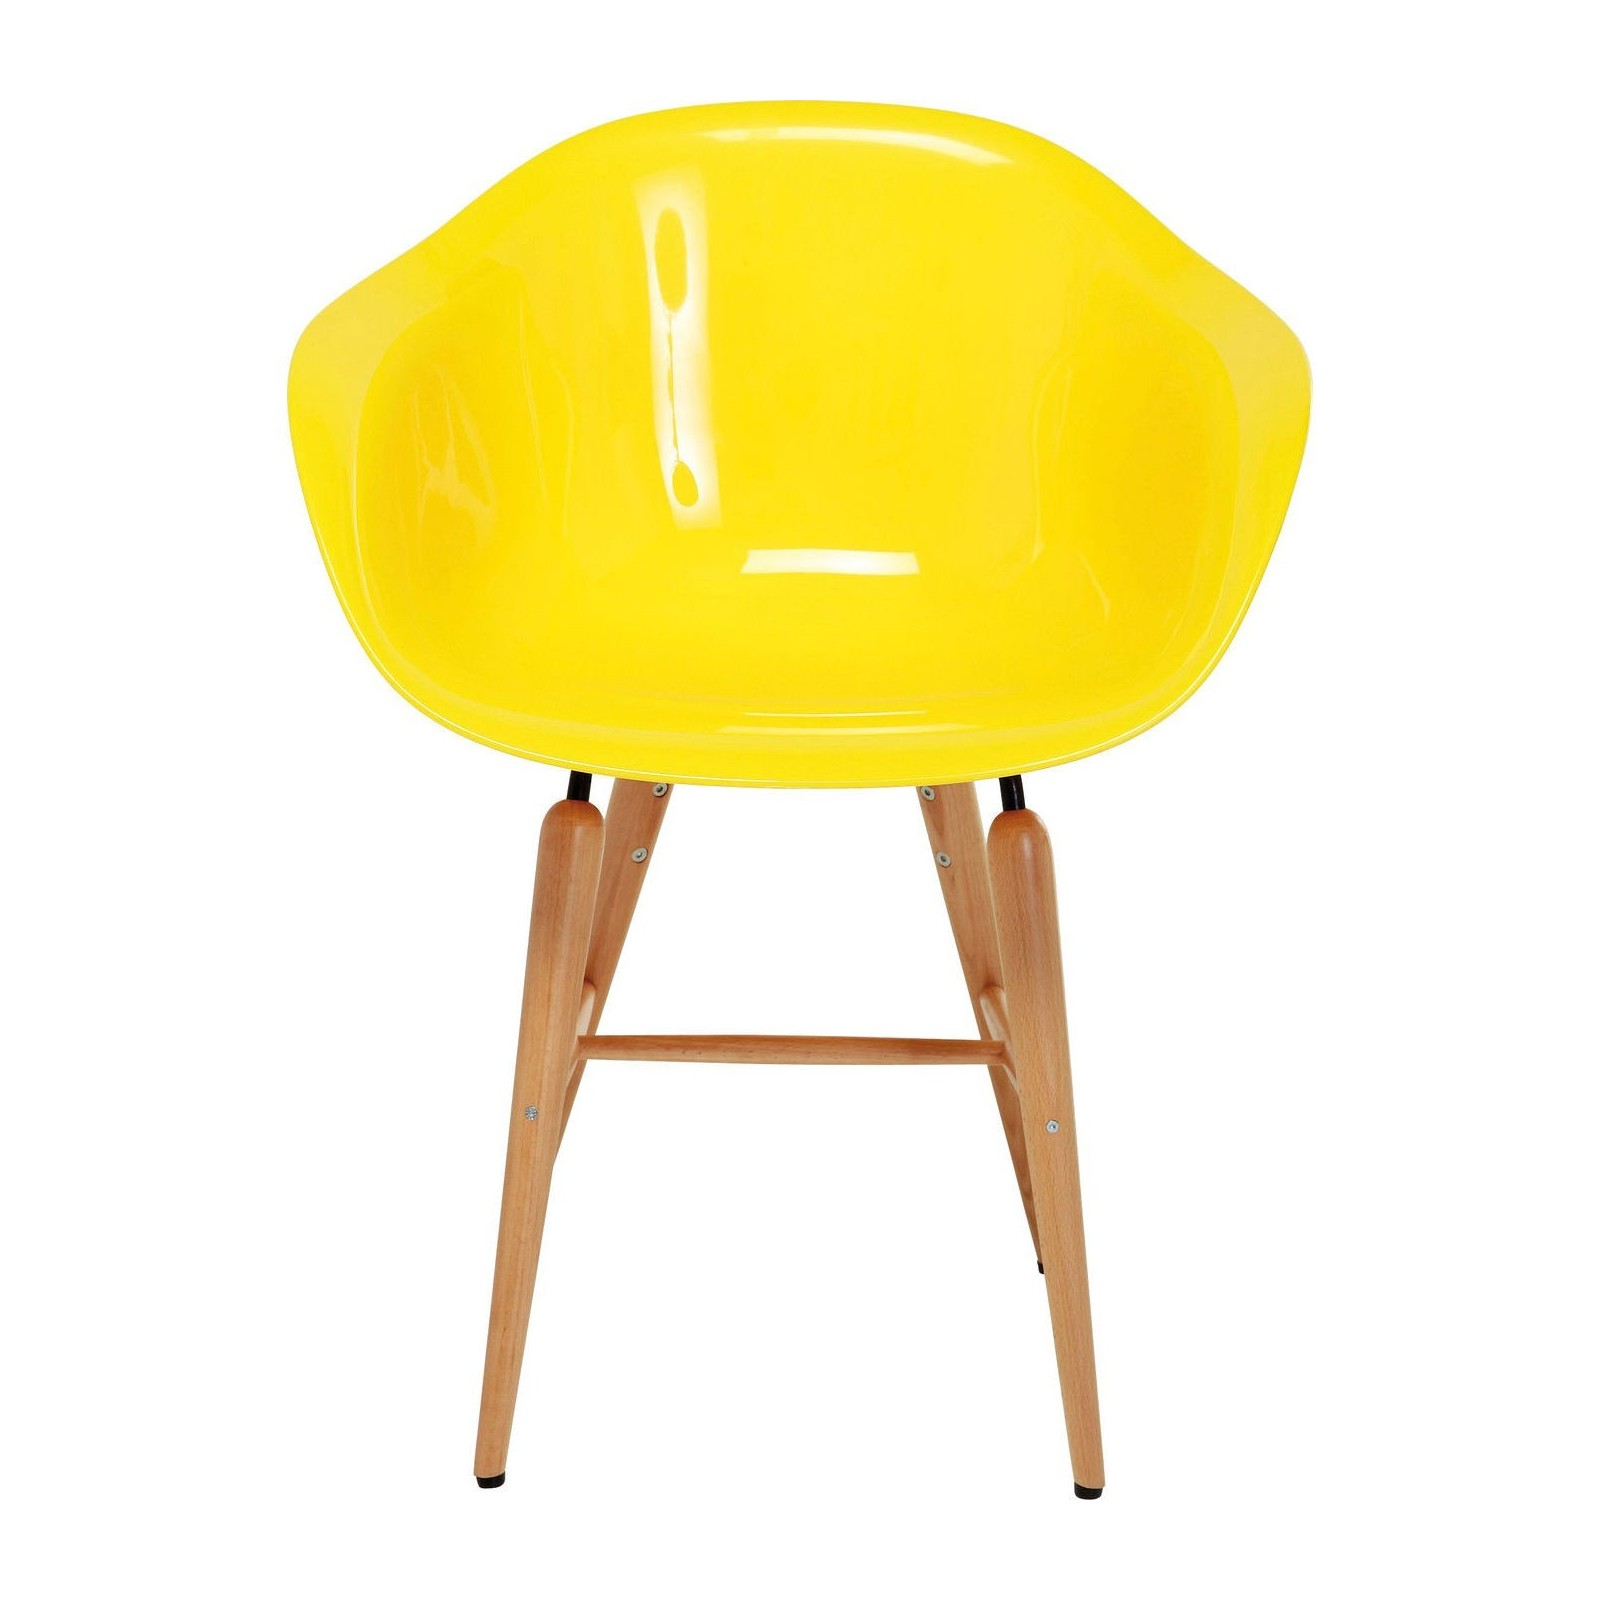 Chaise avec accoudoirs forum jaune kare design for Chaise jaune design